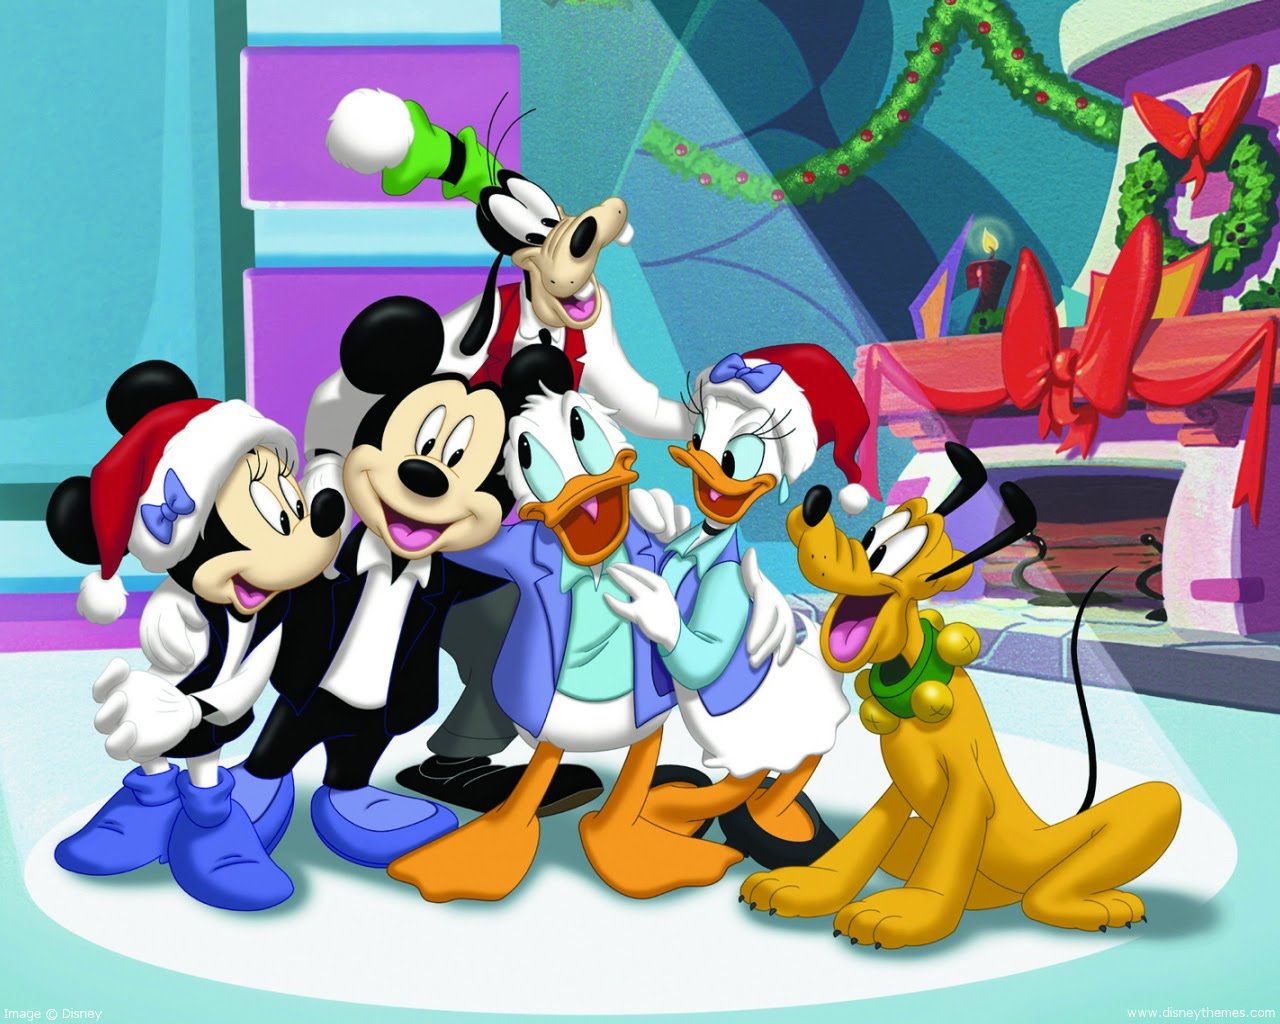 mickeys magical christmas snowed in at the house of mouse is a direct to video movie spin off from the animated television series house of mouse - Mickey Magical Christmas Snowed In At The House Of Mouse